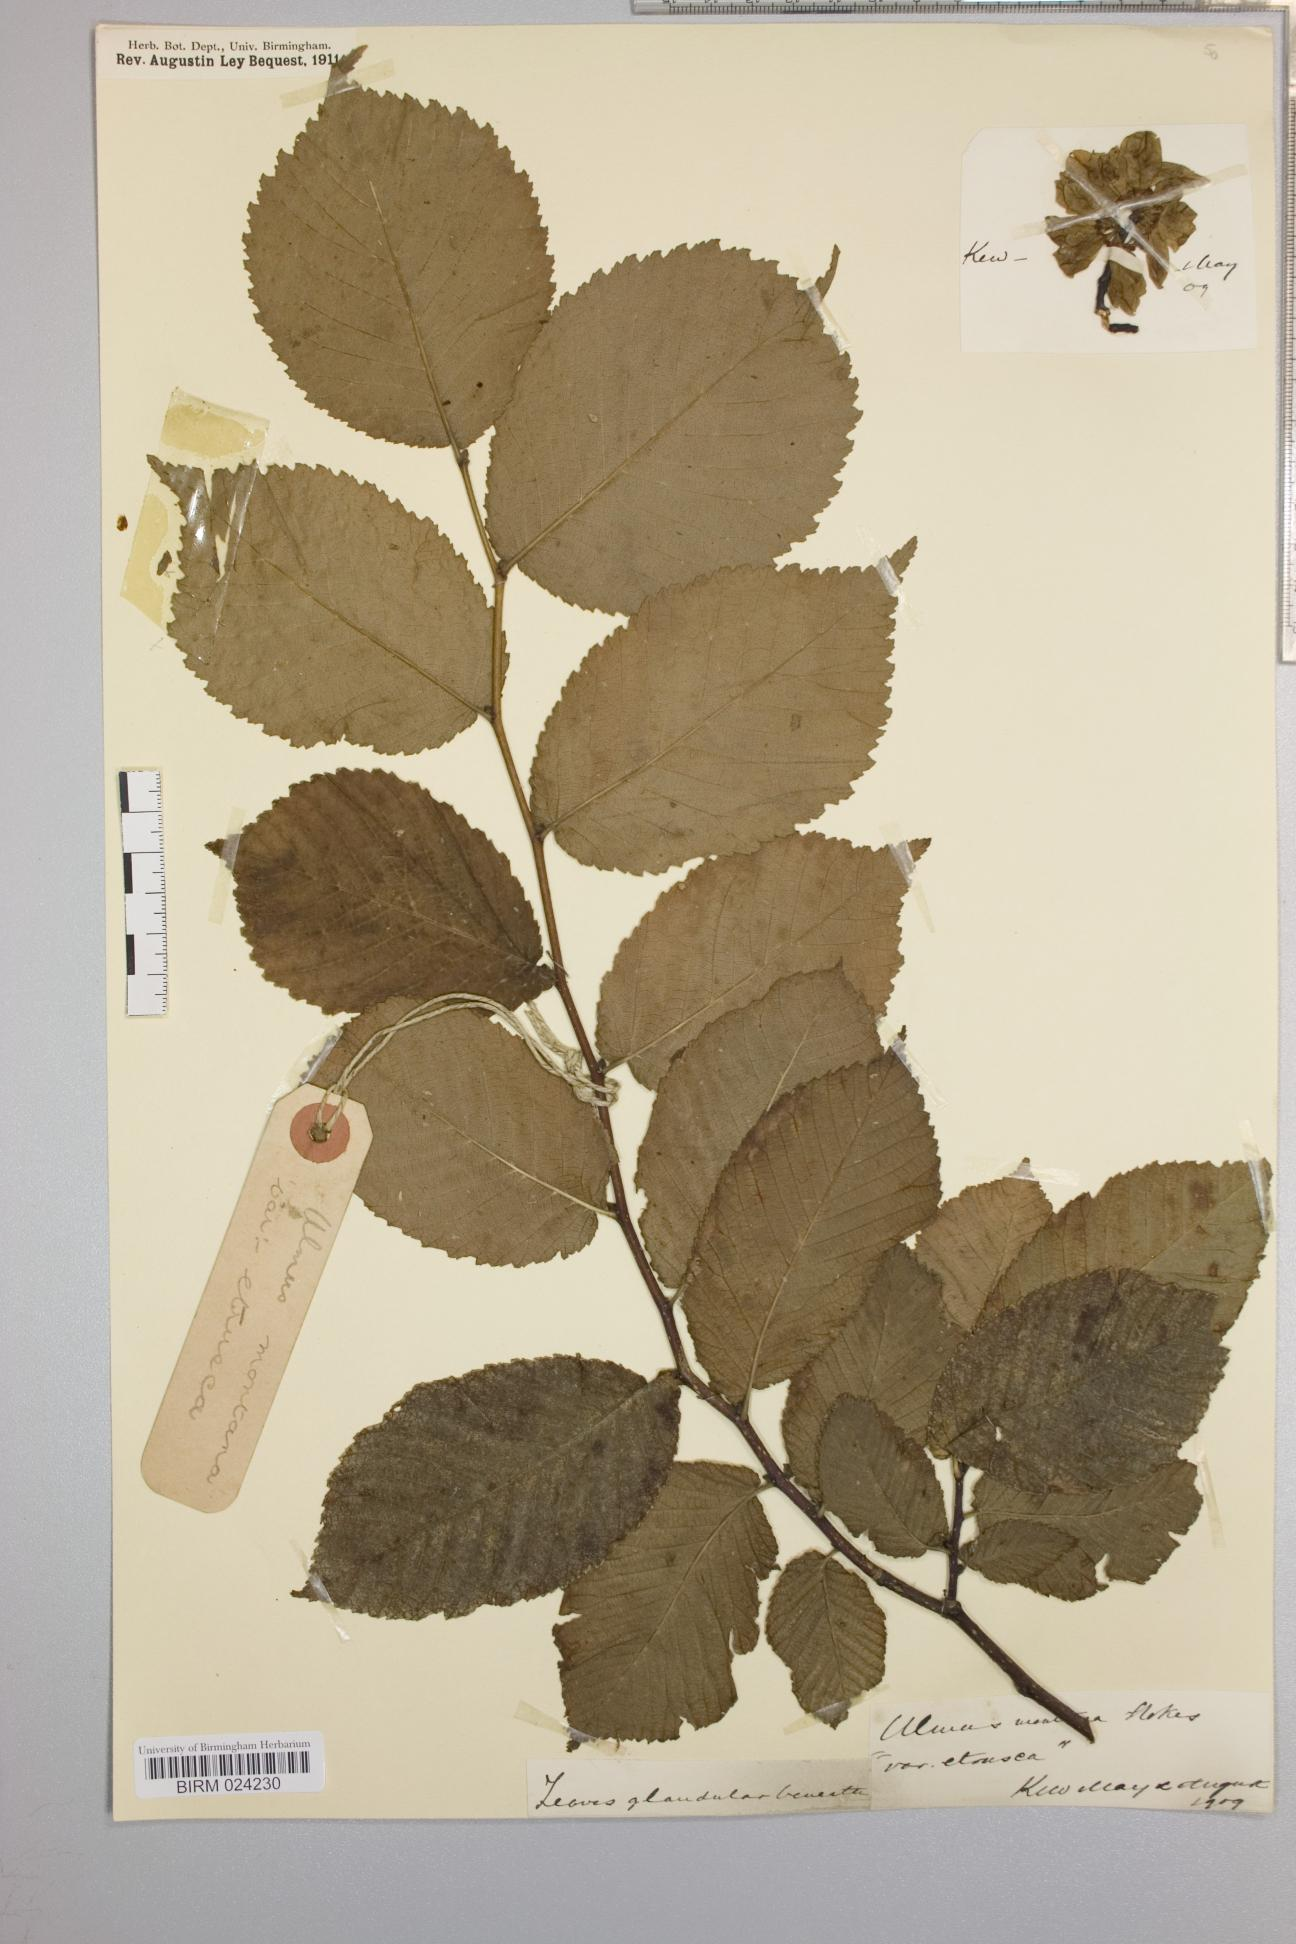 Ulmus glabra x minor x plotii = U. x hollandica herbarium specimen from Kew, VC17 Surrey in 1909.